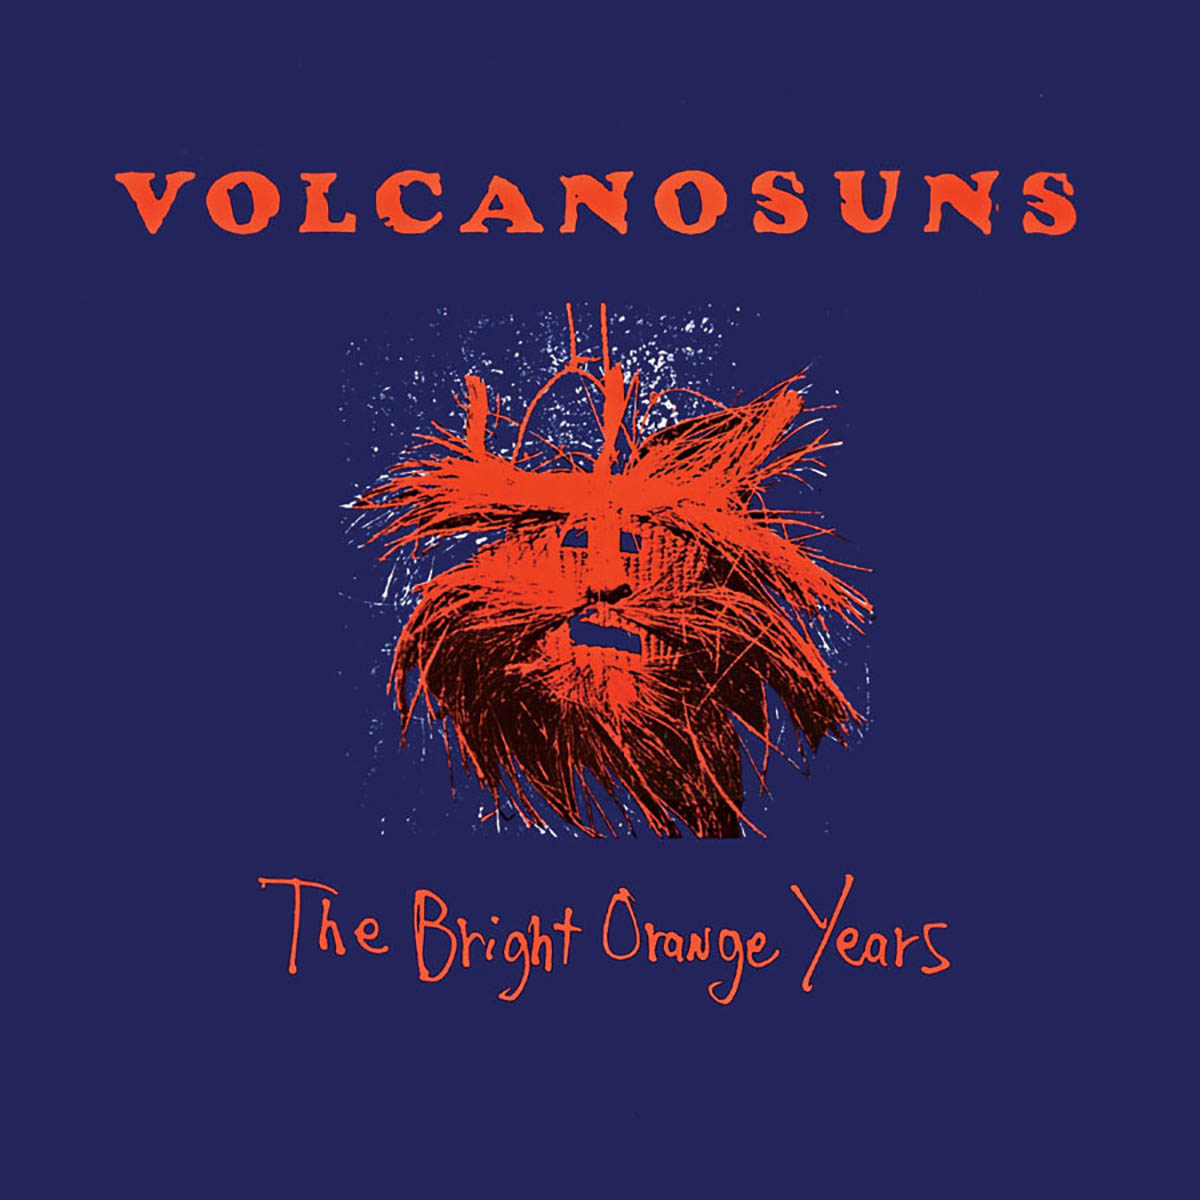 Volcano Suns, The Bright Orange Years